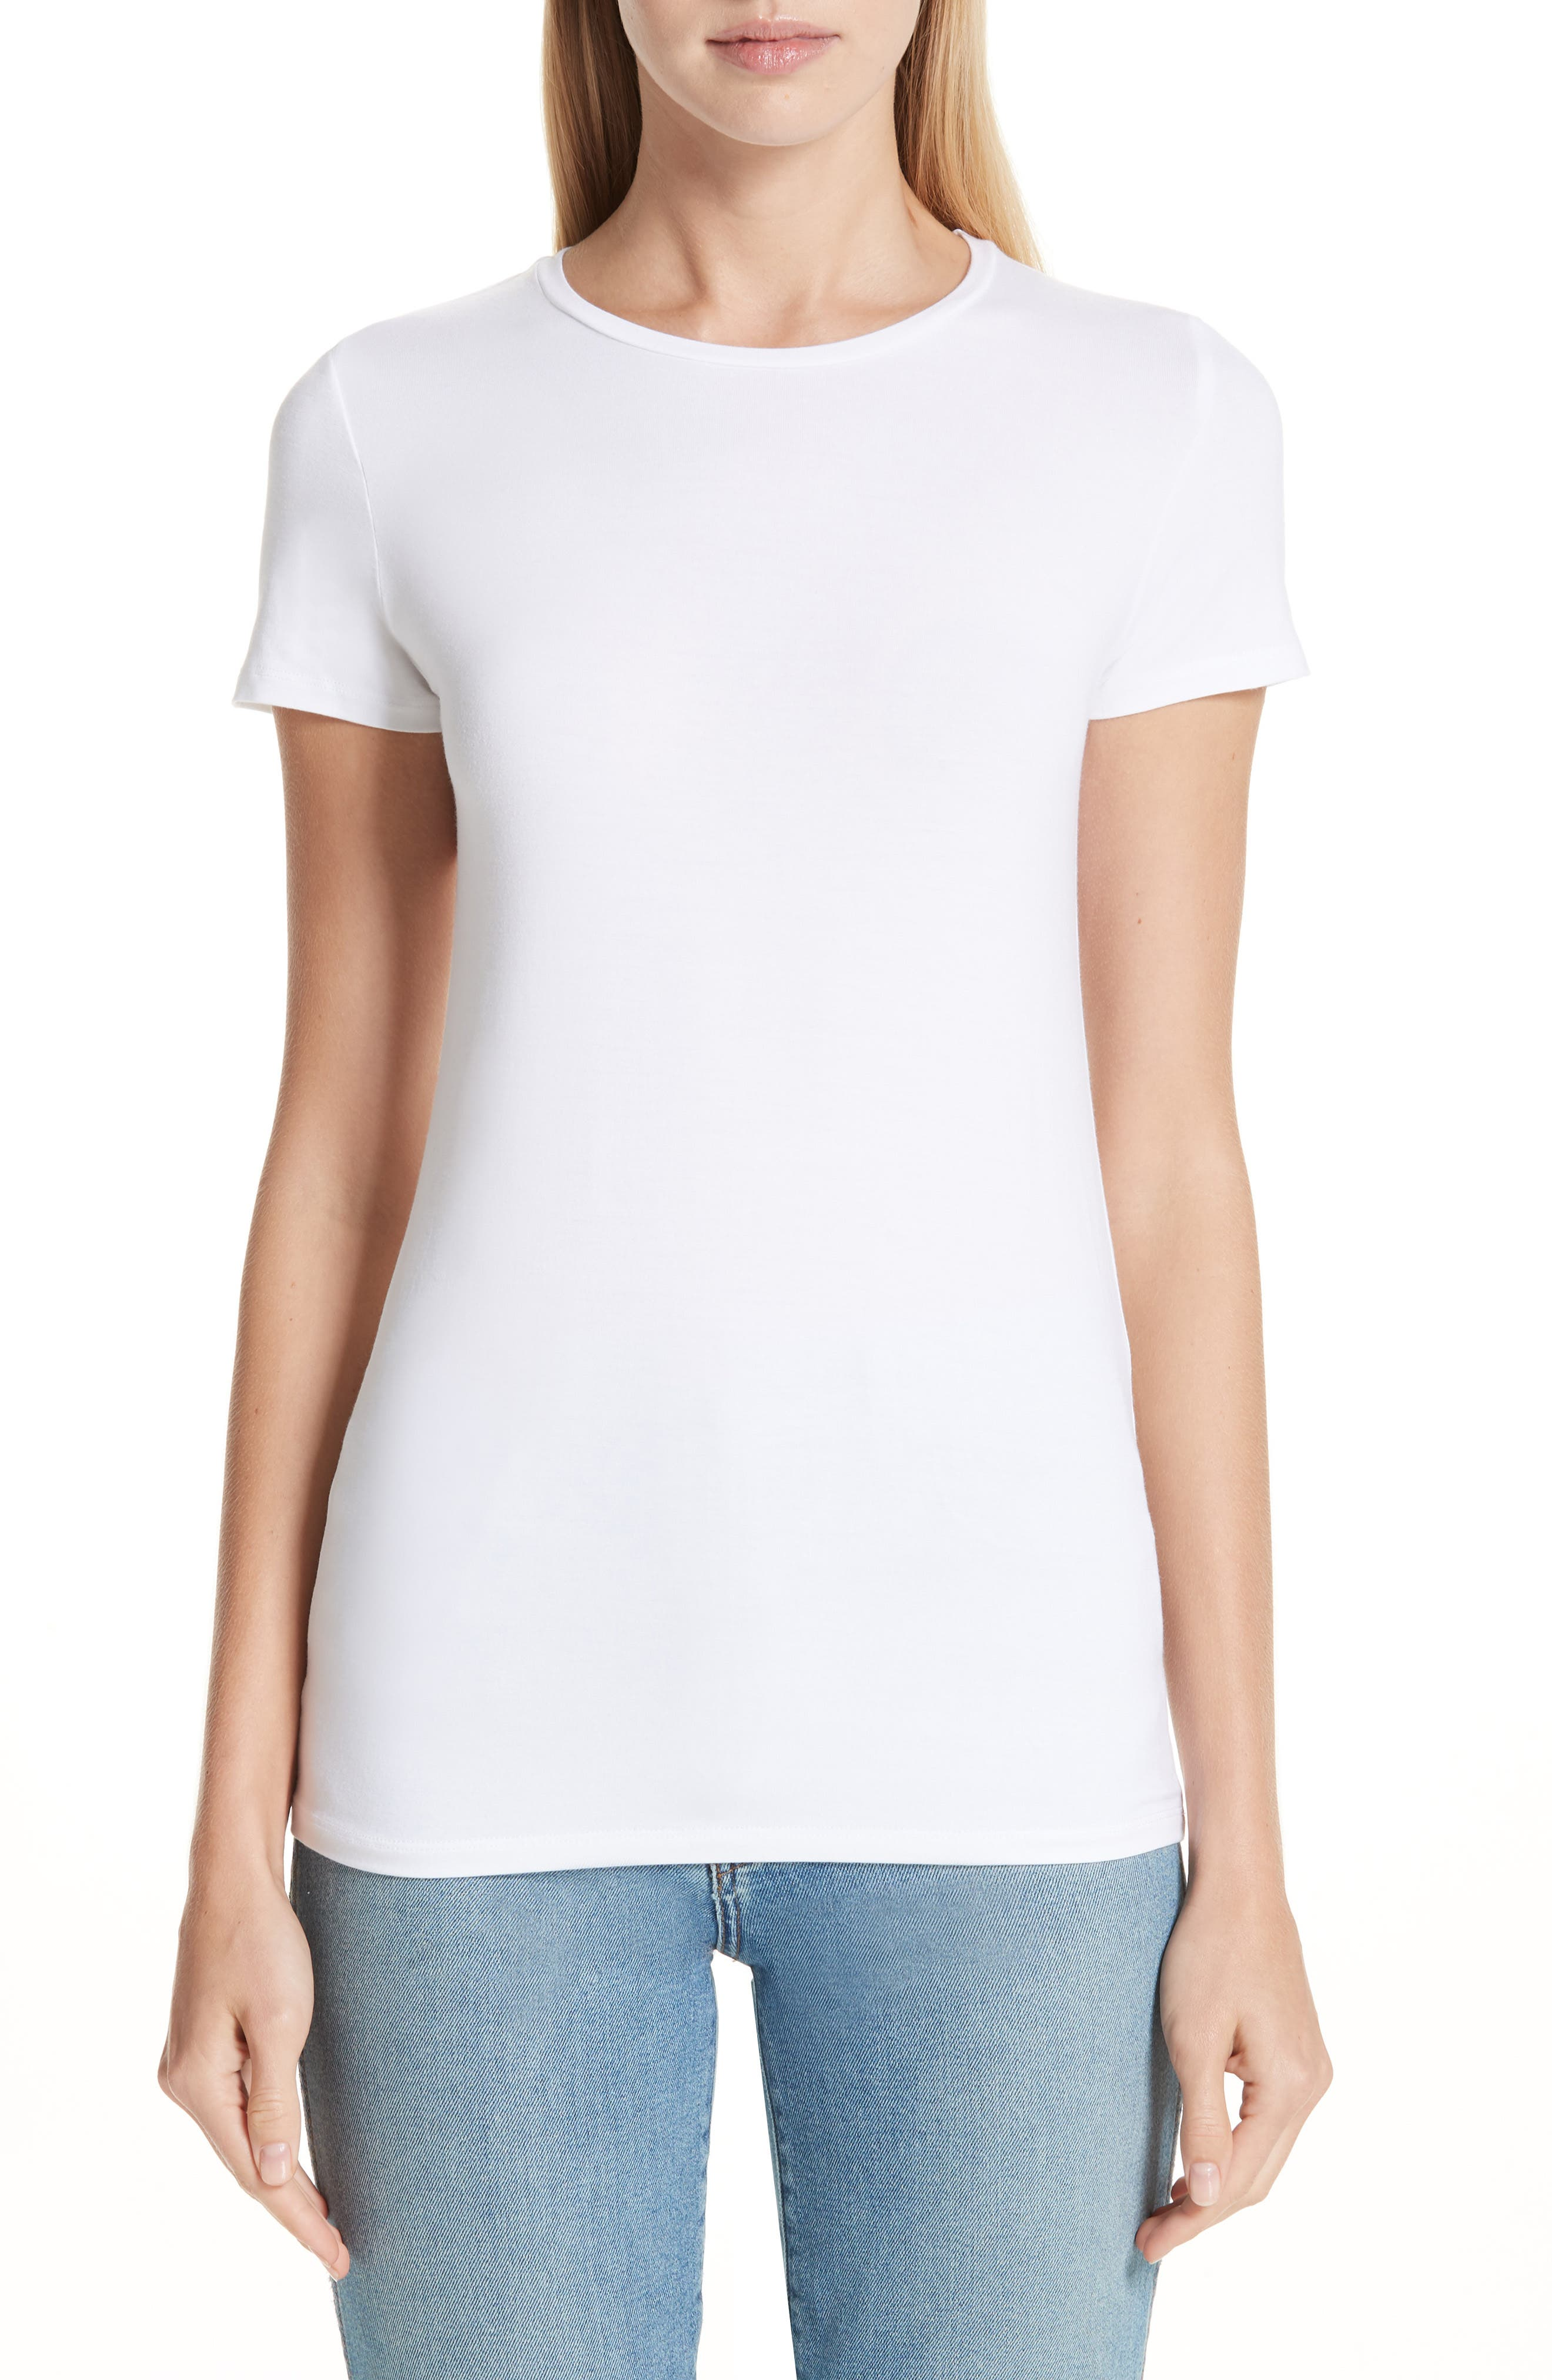 MAJESTIC Soft Touch Short-Sleeve Crewneck T-Shirt in Blanca